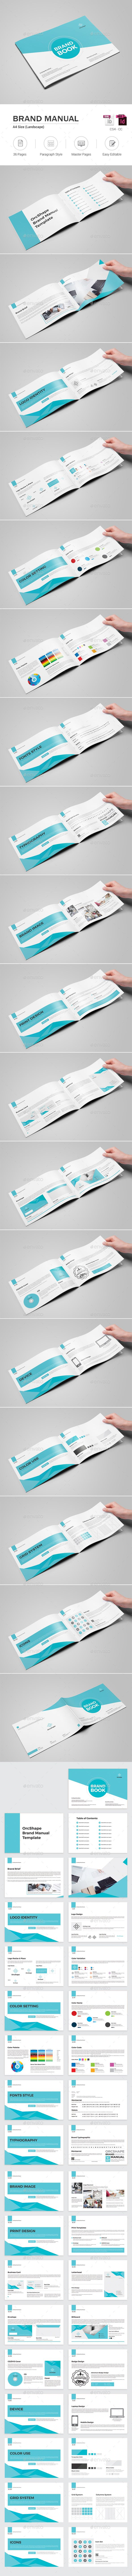 Best Brand Style Guide Template  Design Images On